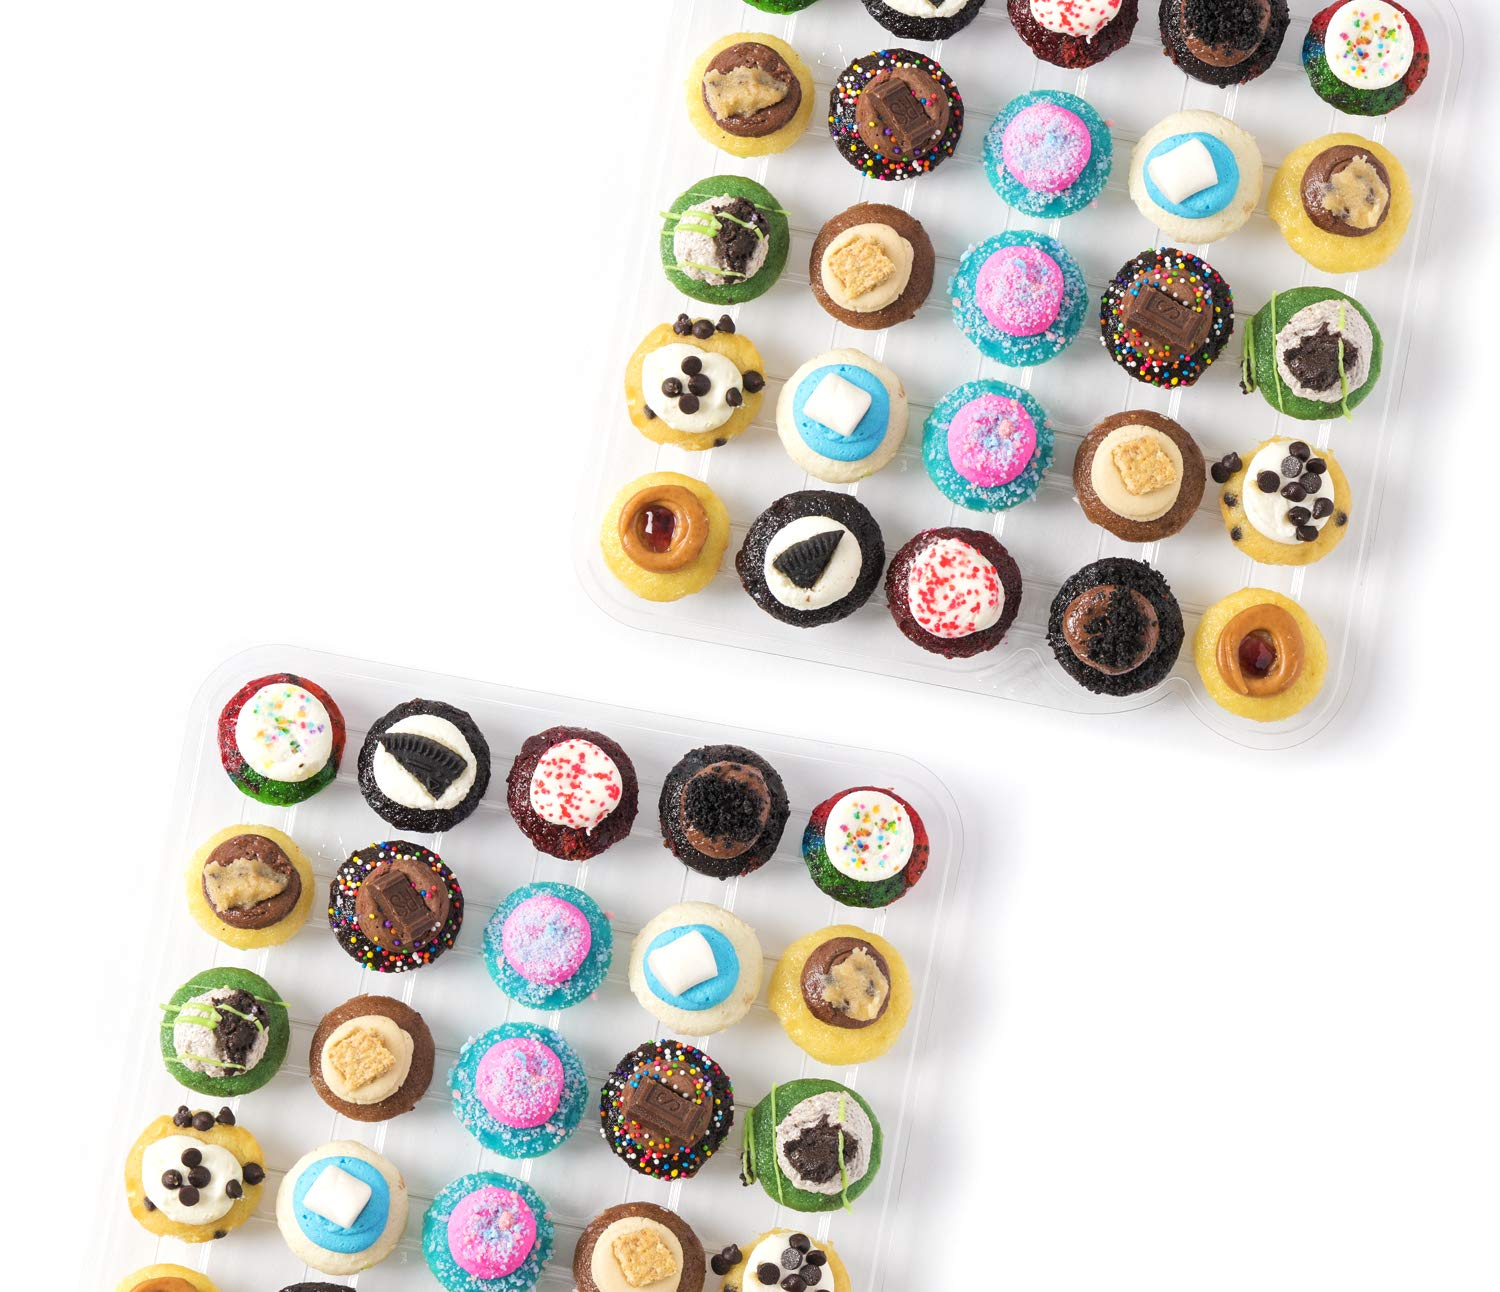 Baked by Melissa Cupcakes The Latest & Greatest - Assorted Bite-Size Cupcakes, 50 Count